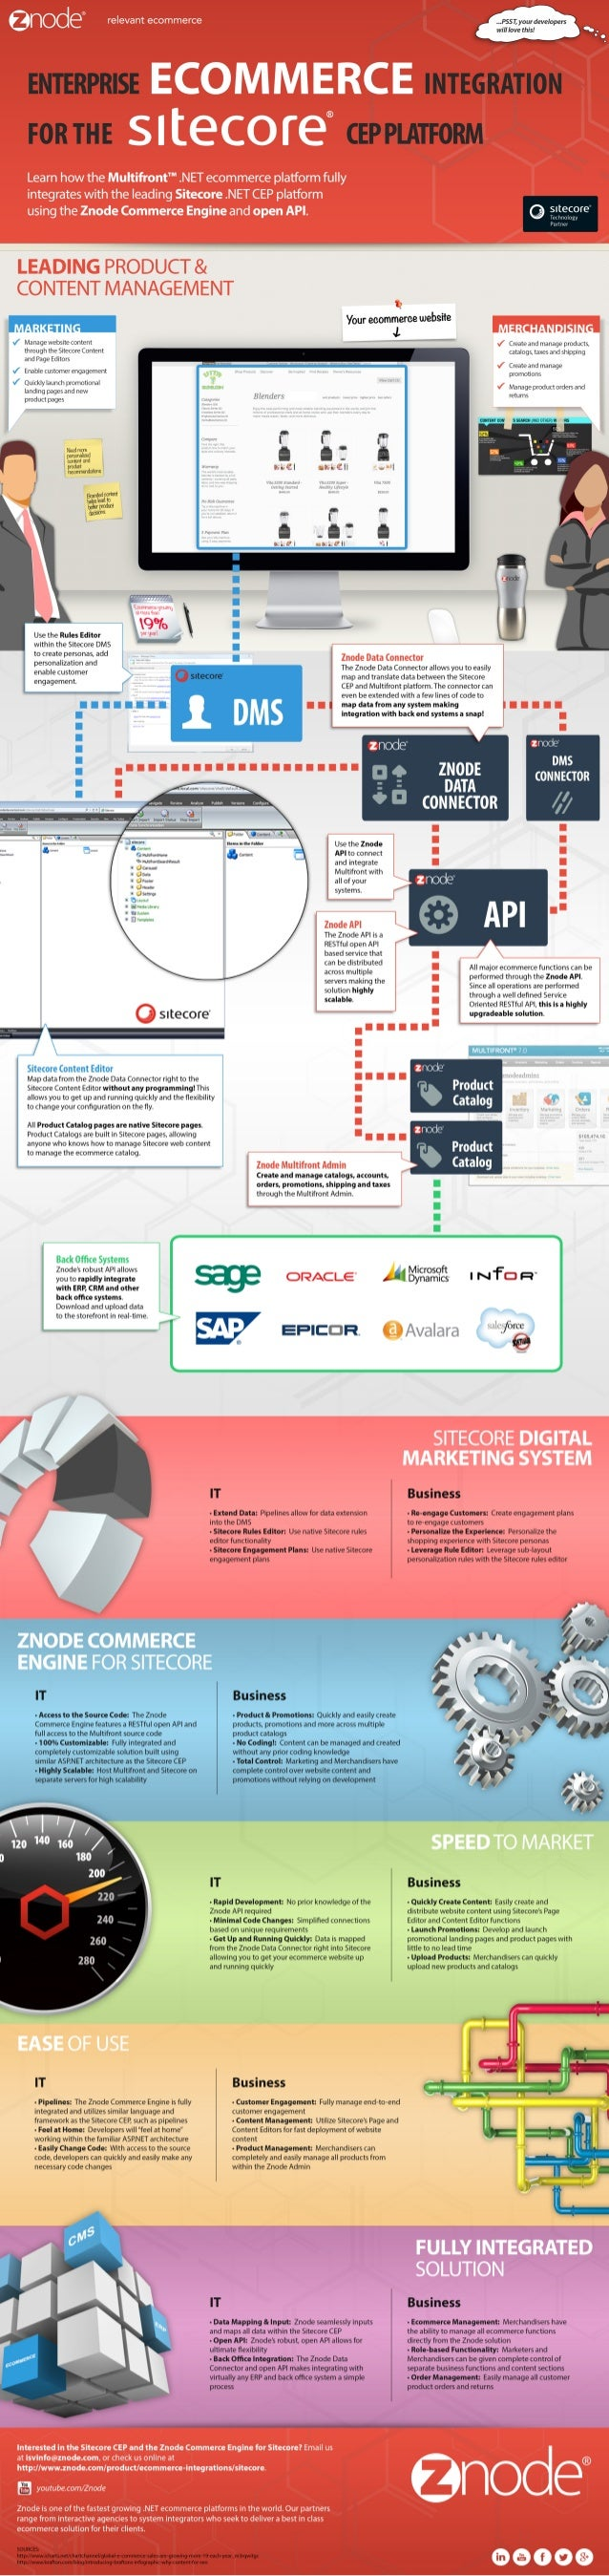 Infographic: Enterprise Ecommerce Integration for the Sitecore CEP and CMS